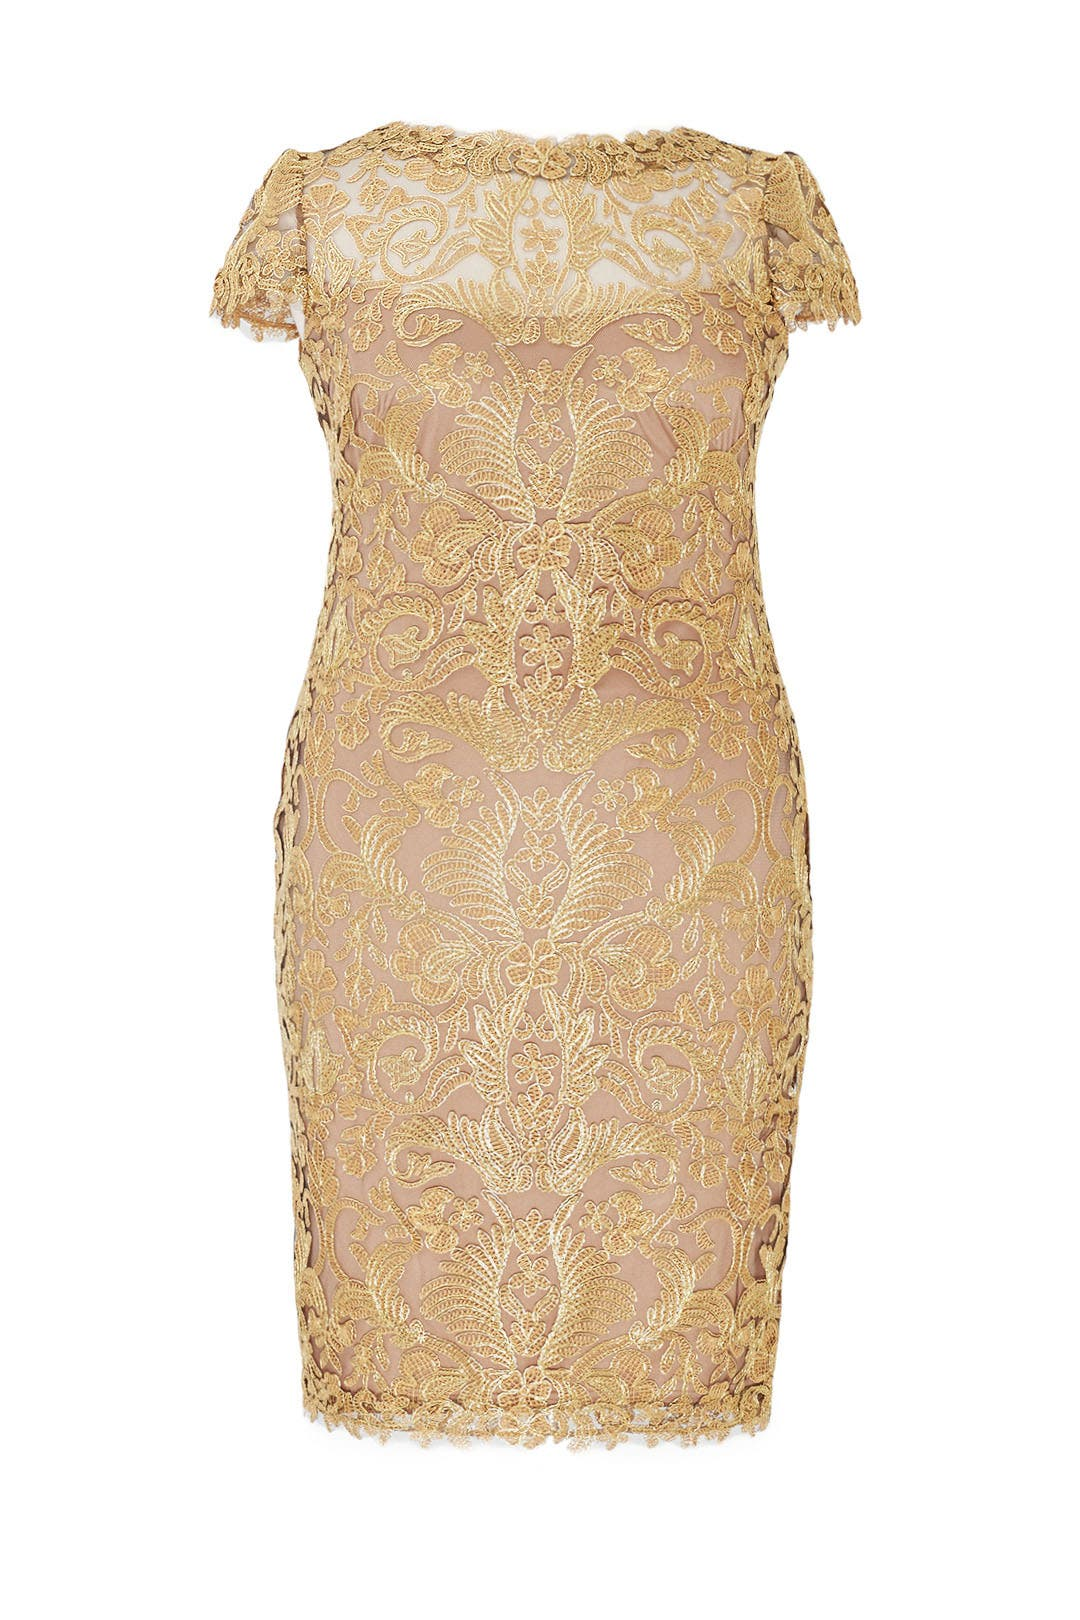 Gold Corded Embroidery Dress By Tadashi Shoji For 85 The Runway